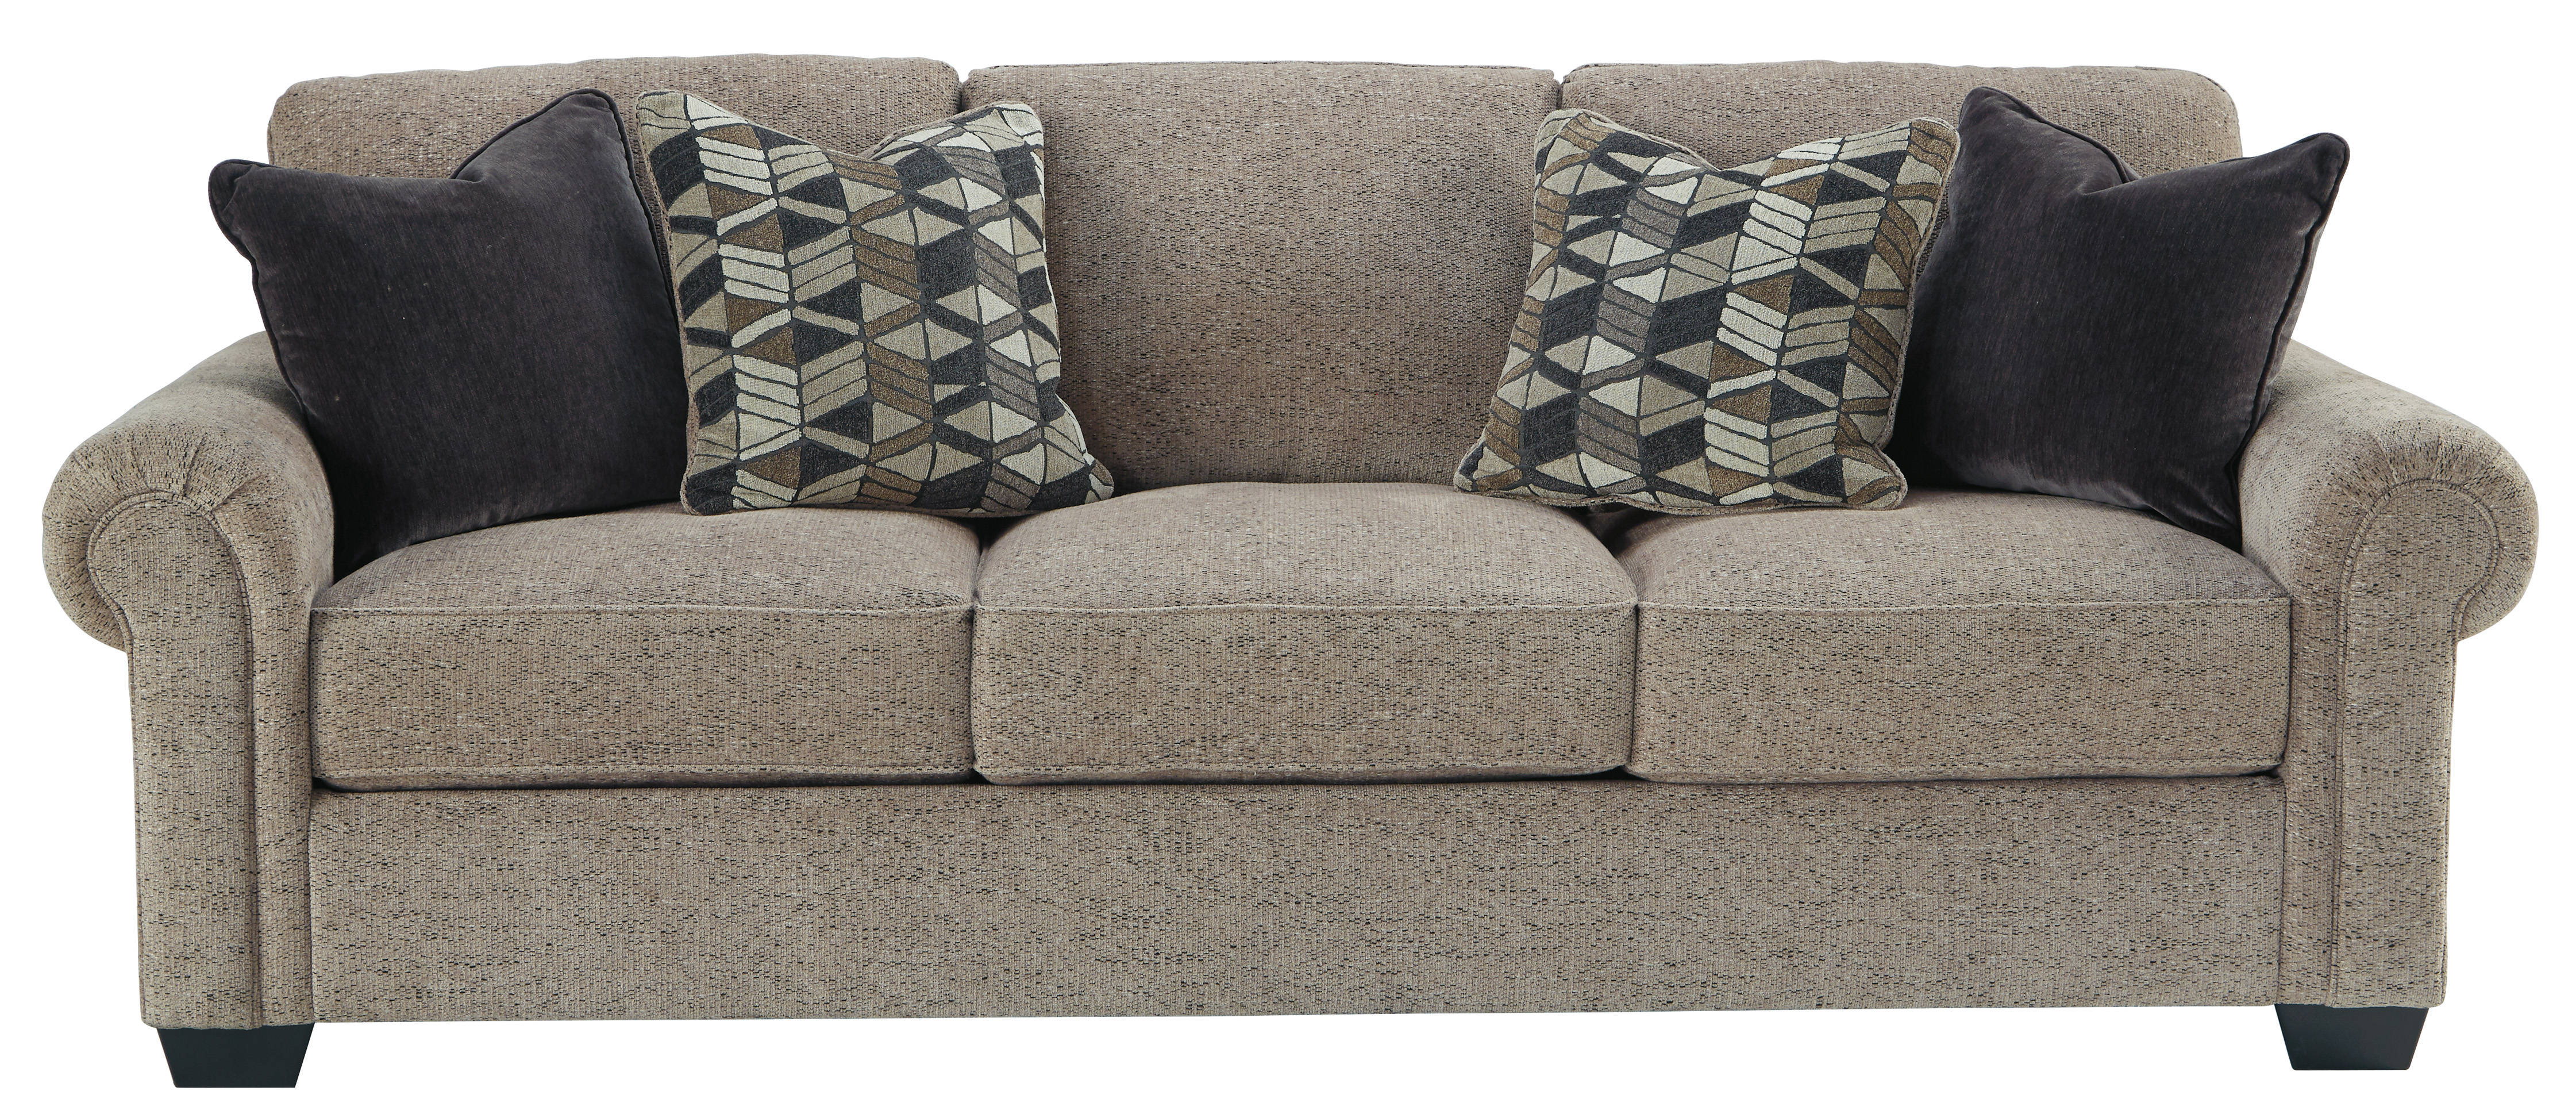 Ashley Furniture Fehmarn Toffee Sofa Click To Enlarge